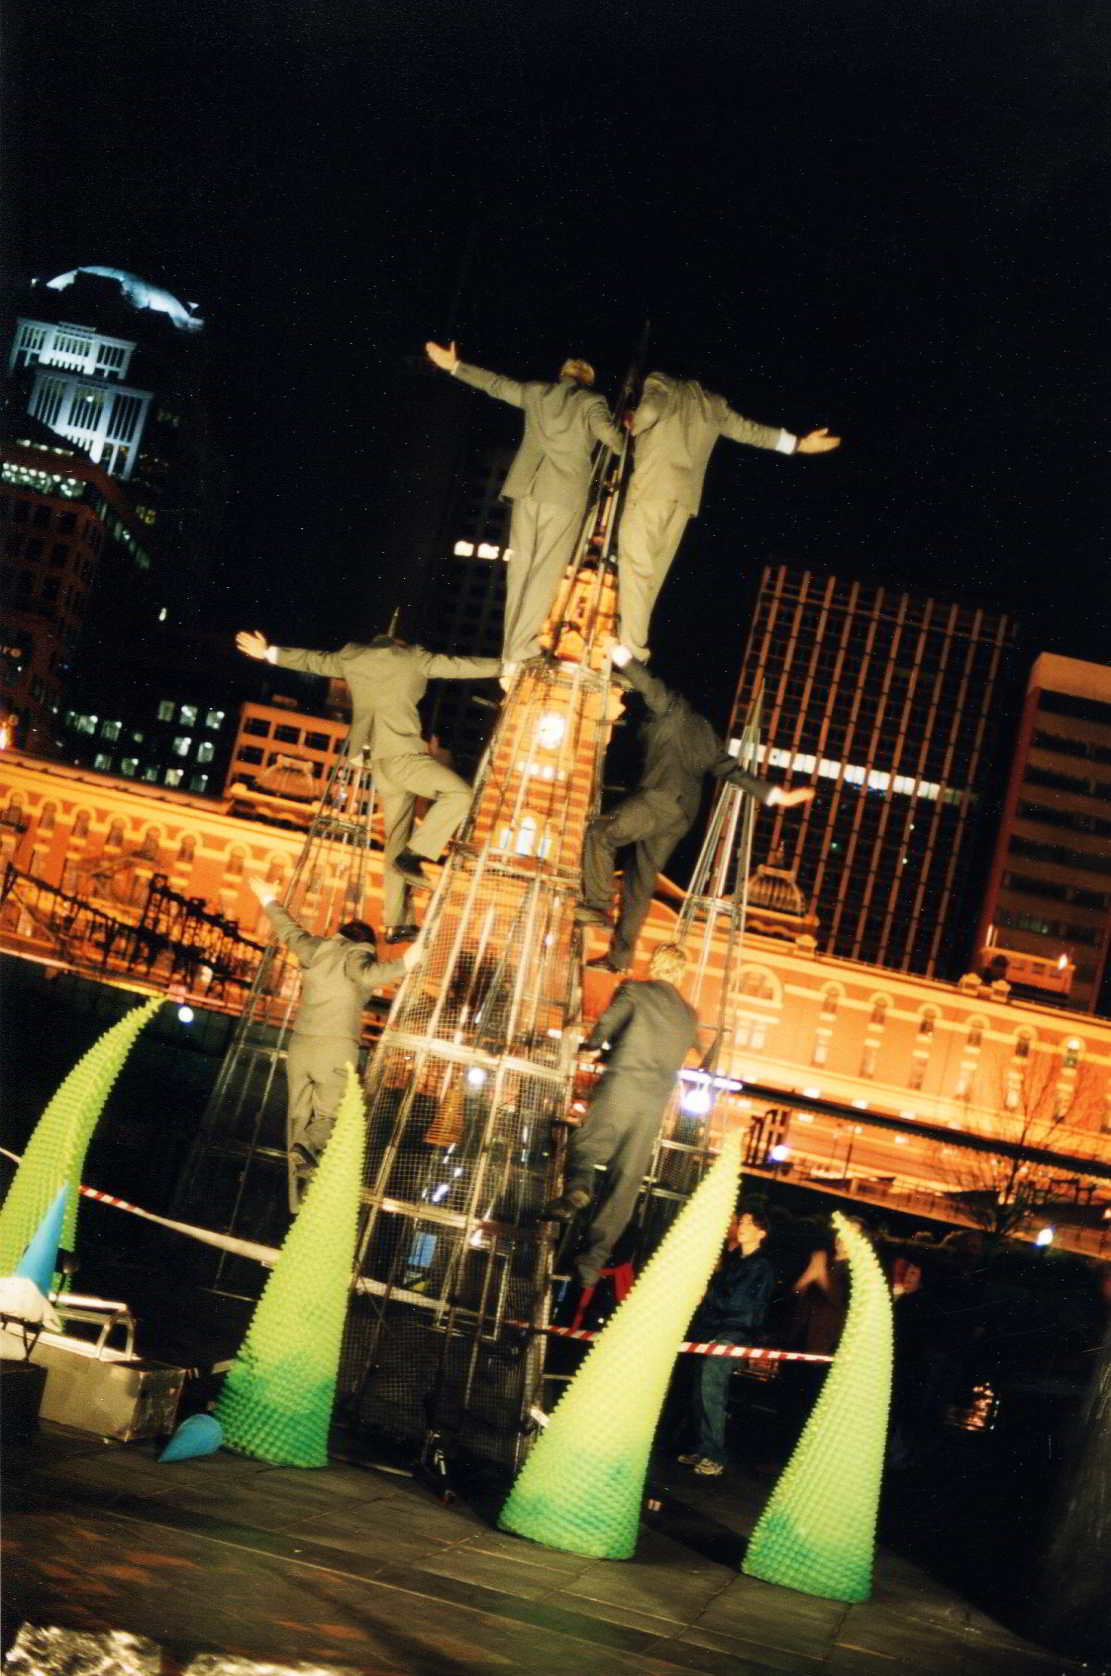 back view of acrobats at night in a 3-high tower in front of city buildings